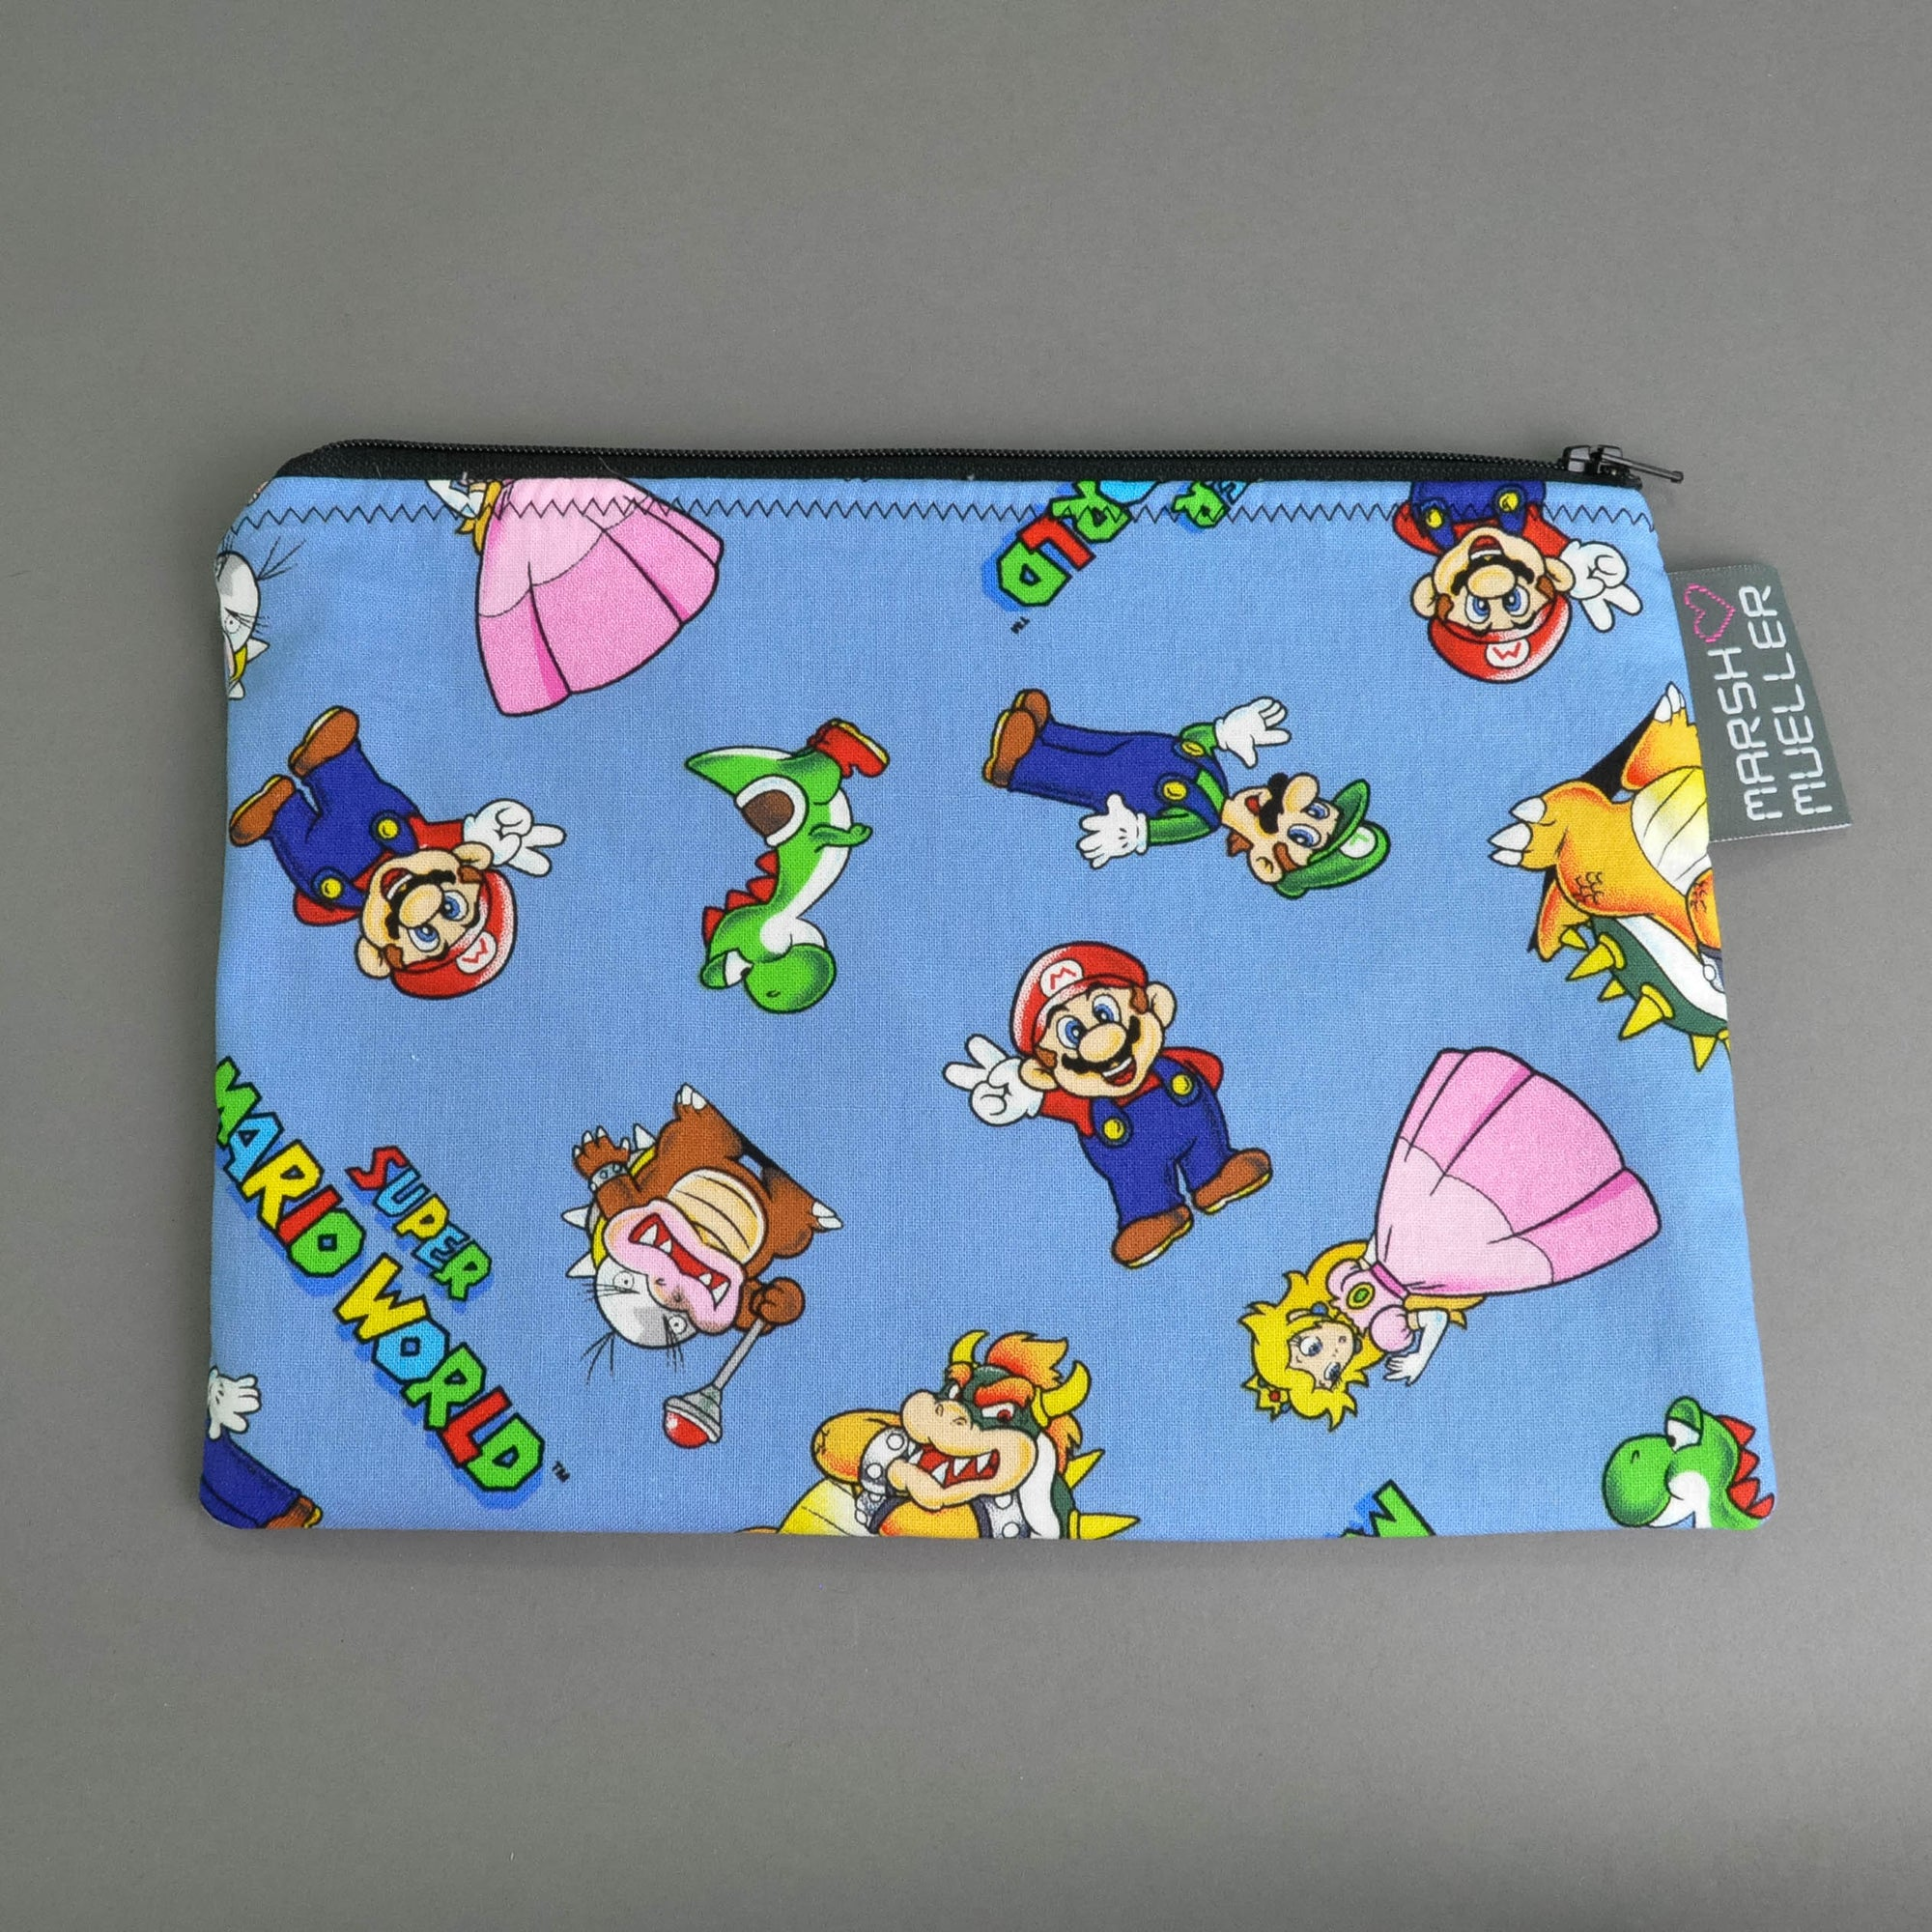 Super Mario World Zippy Bag